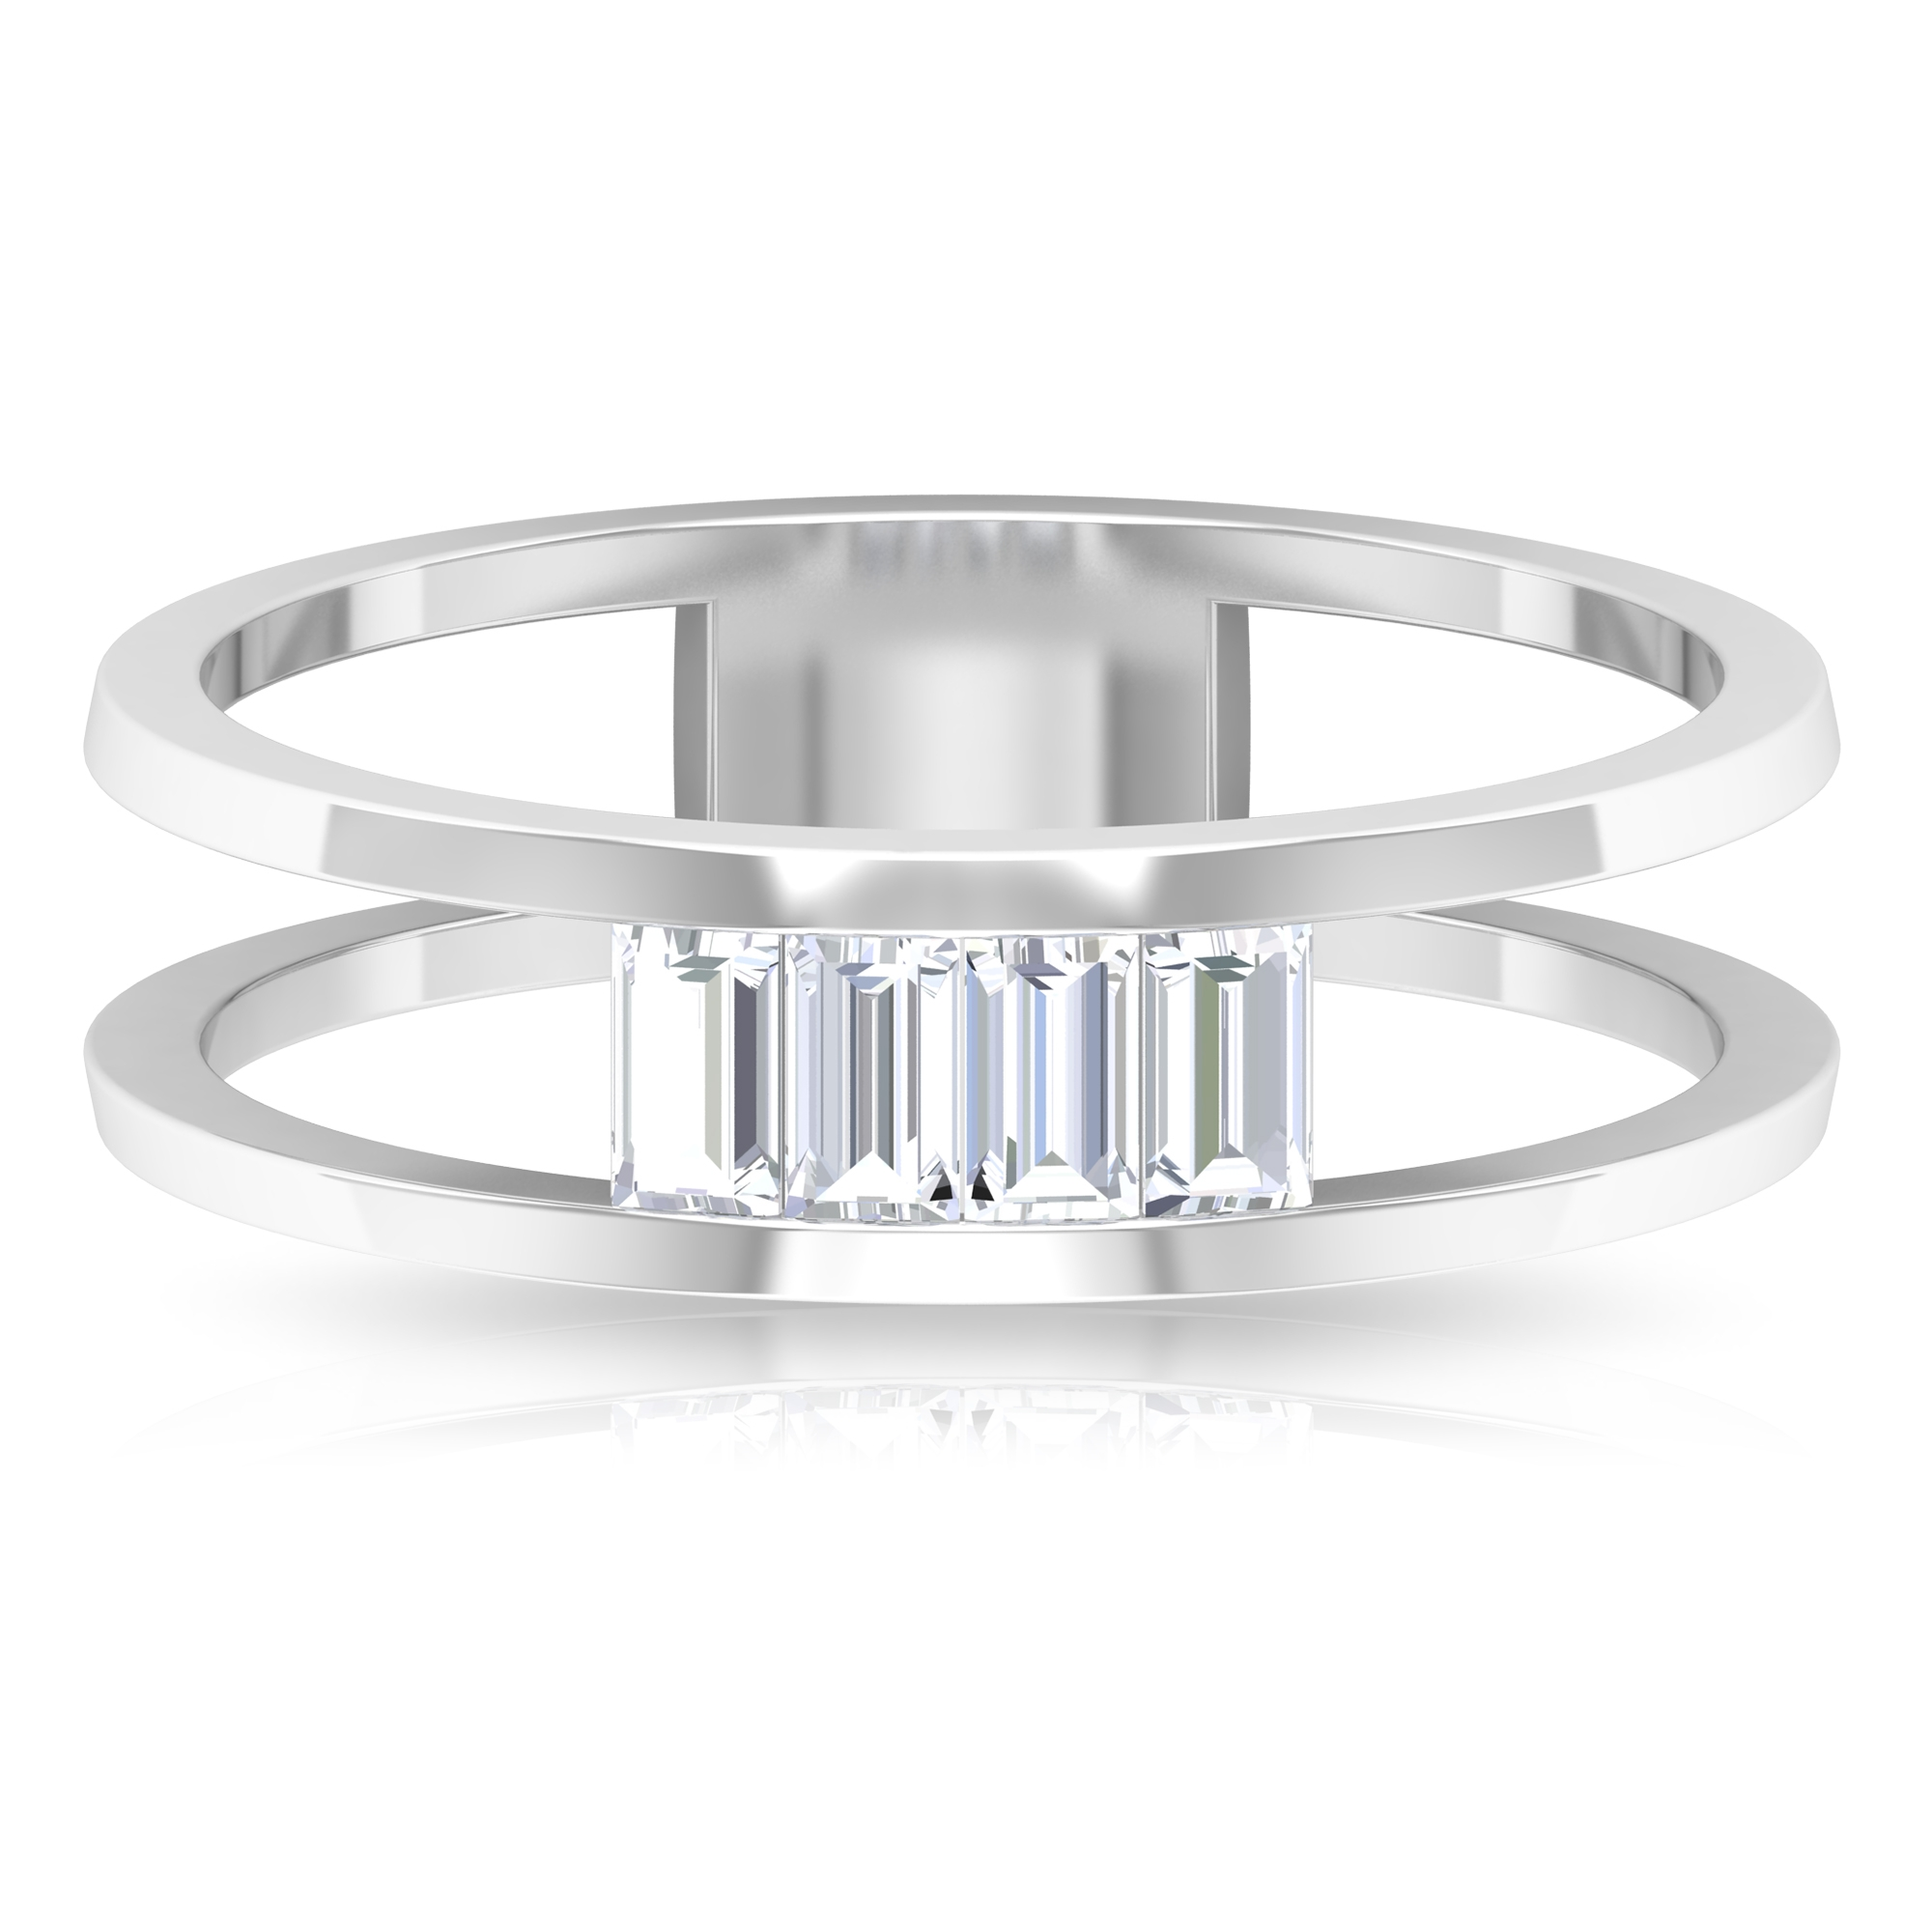 3/4 CT Baguette Cut Diamond Double Band Ring in Tension Mount Setting